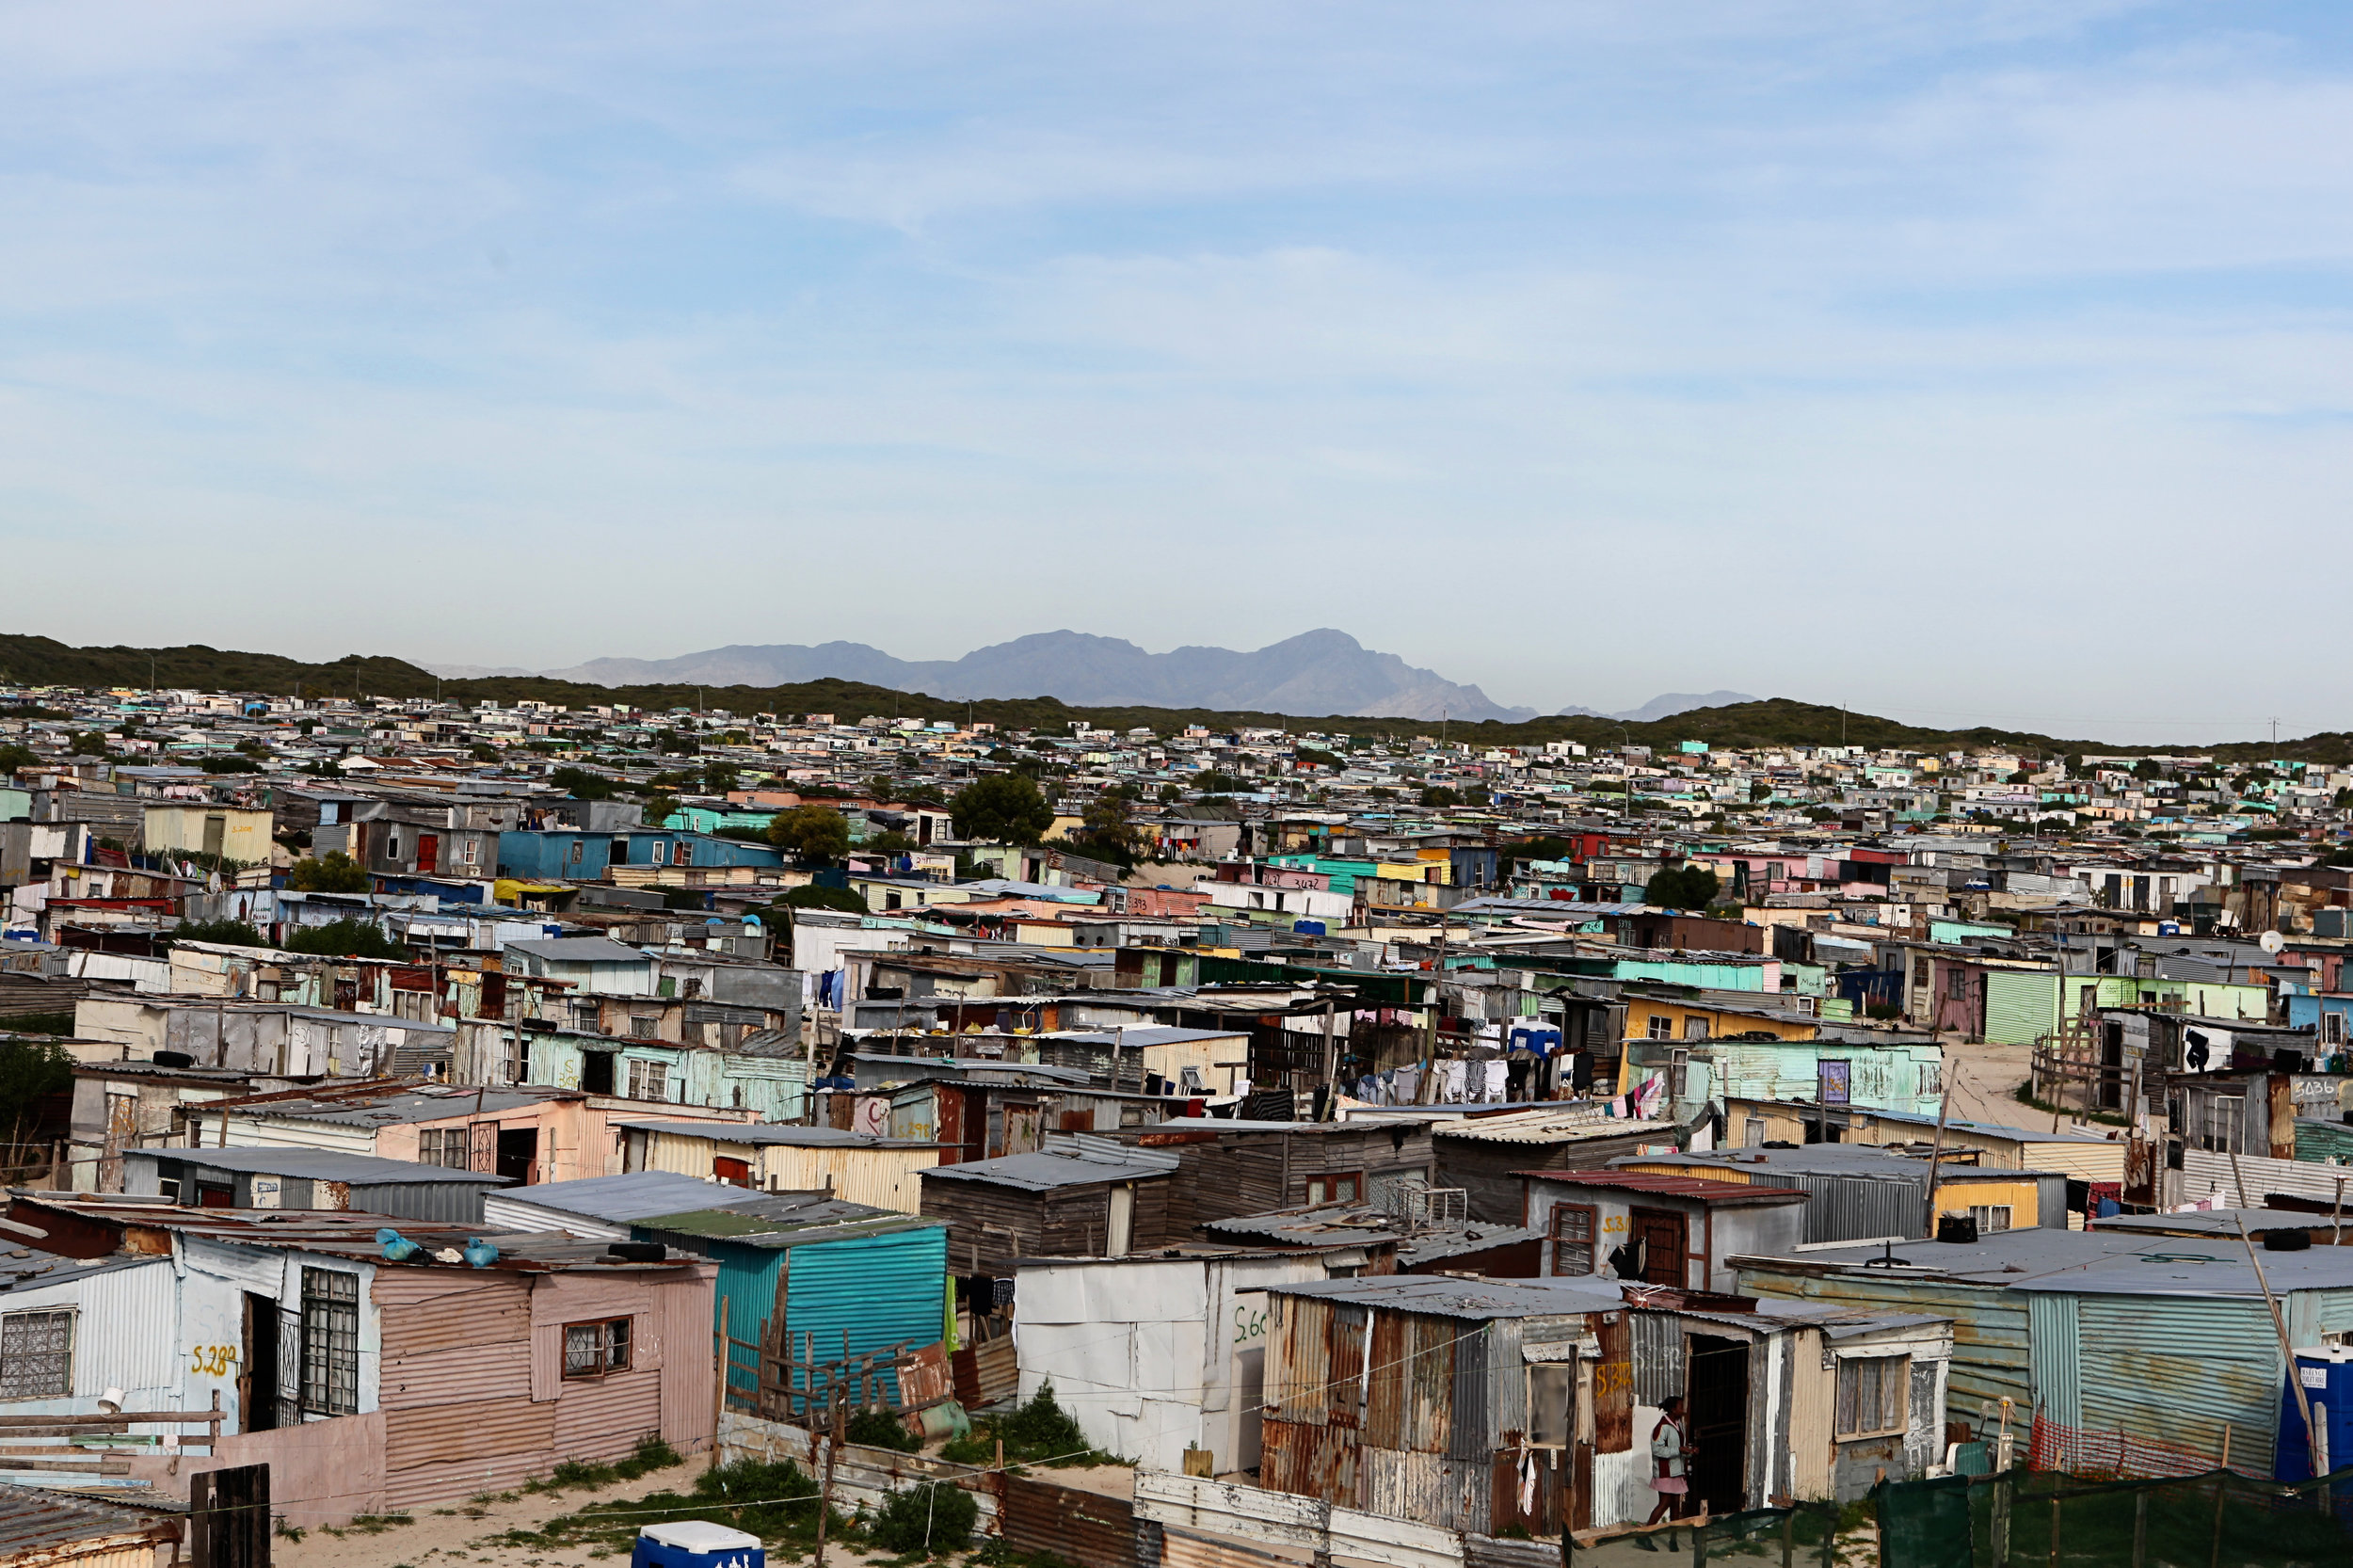 David shot this view of Cape Town, South Africa, while on a trip to serve AFMIN in 2011.